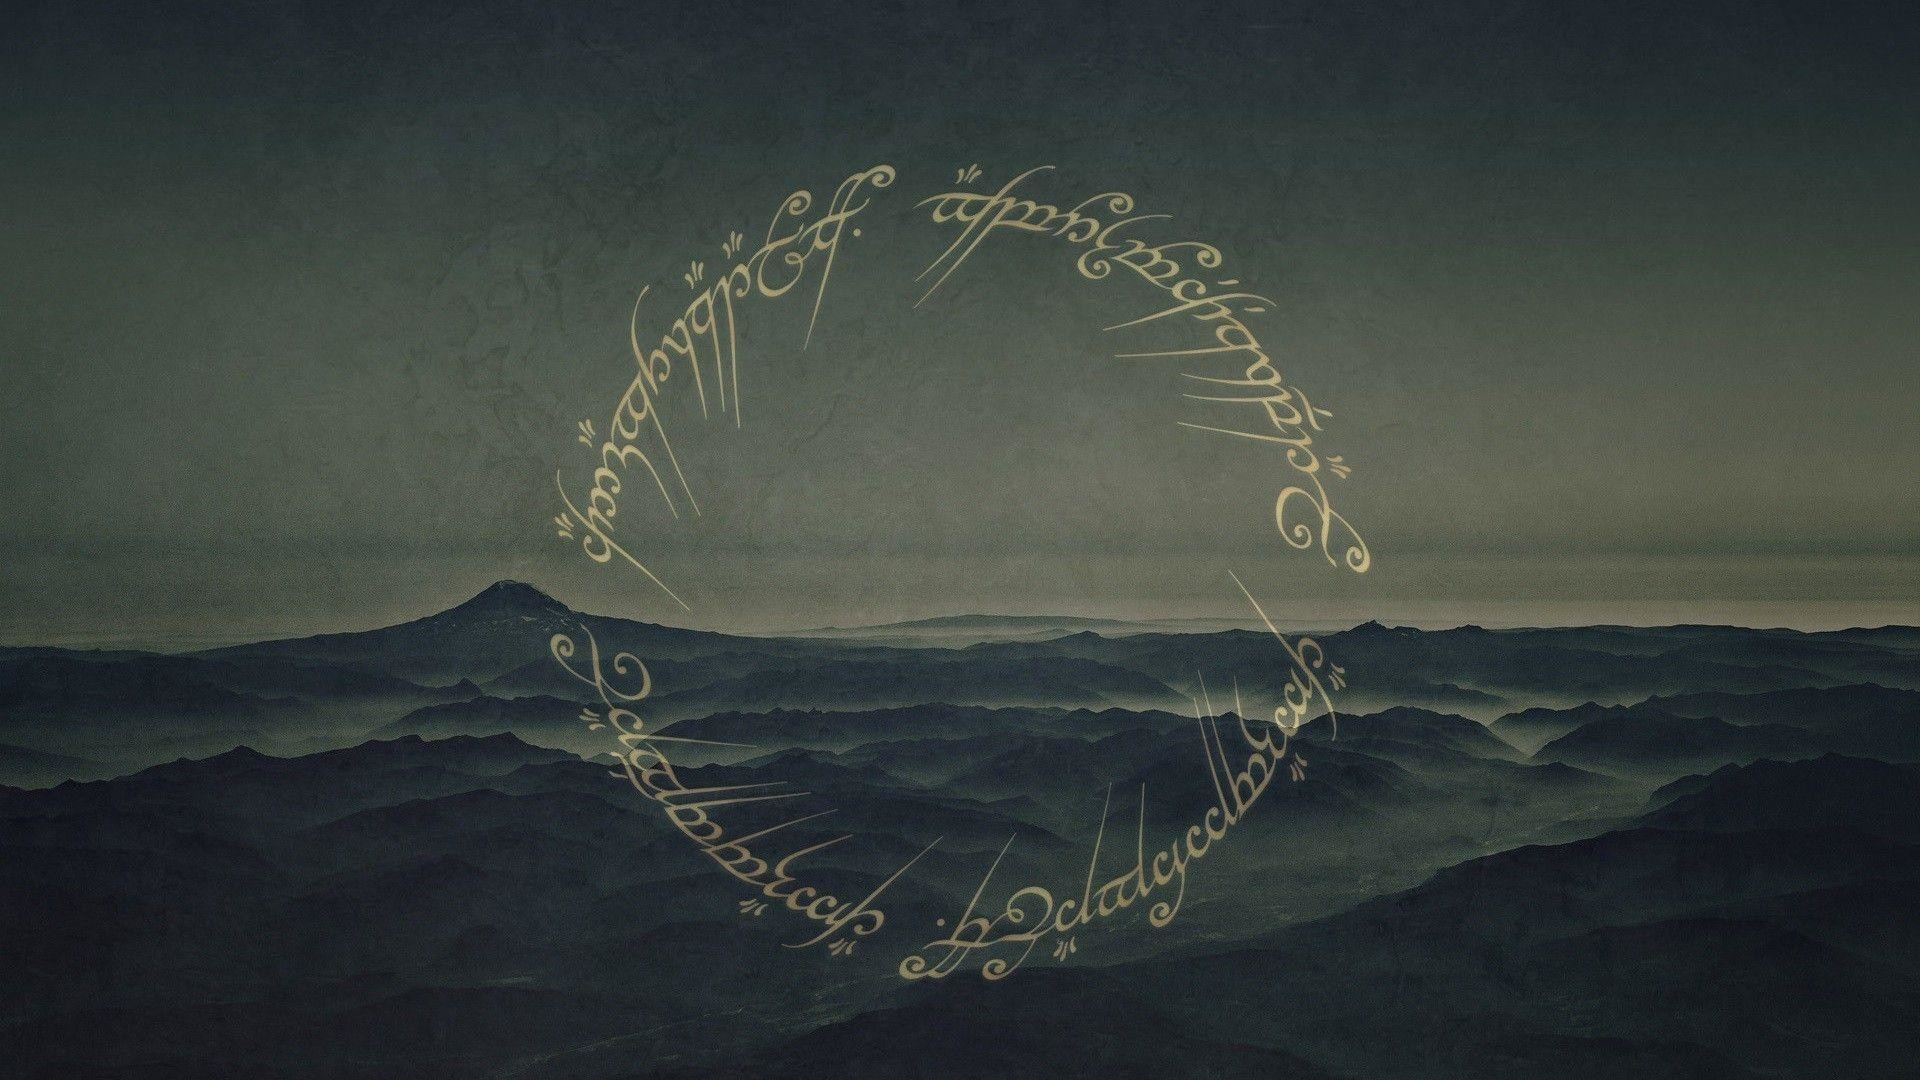 Lord Of The Rings Wallpaper – 1803009